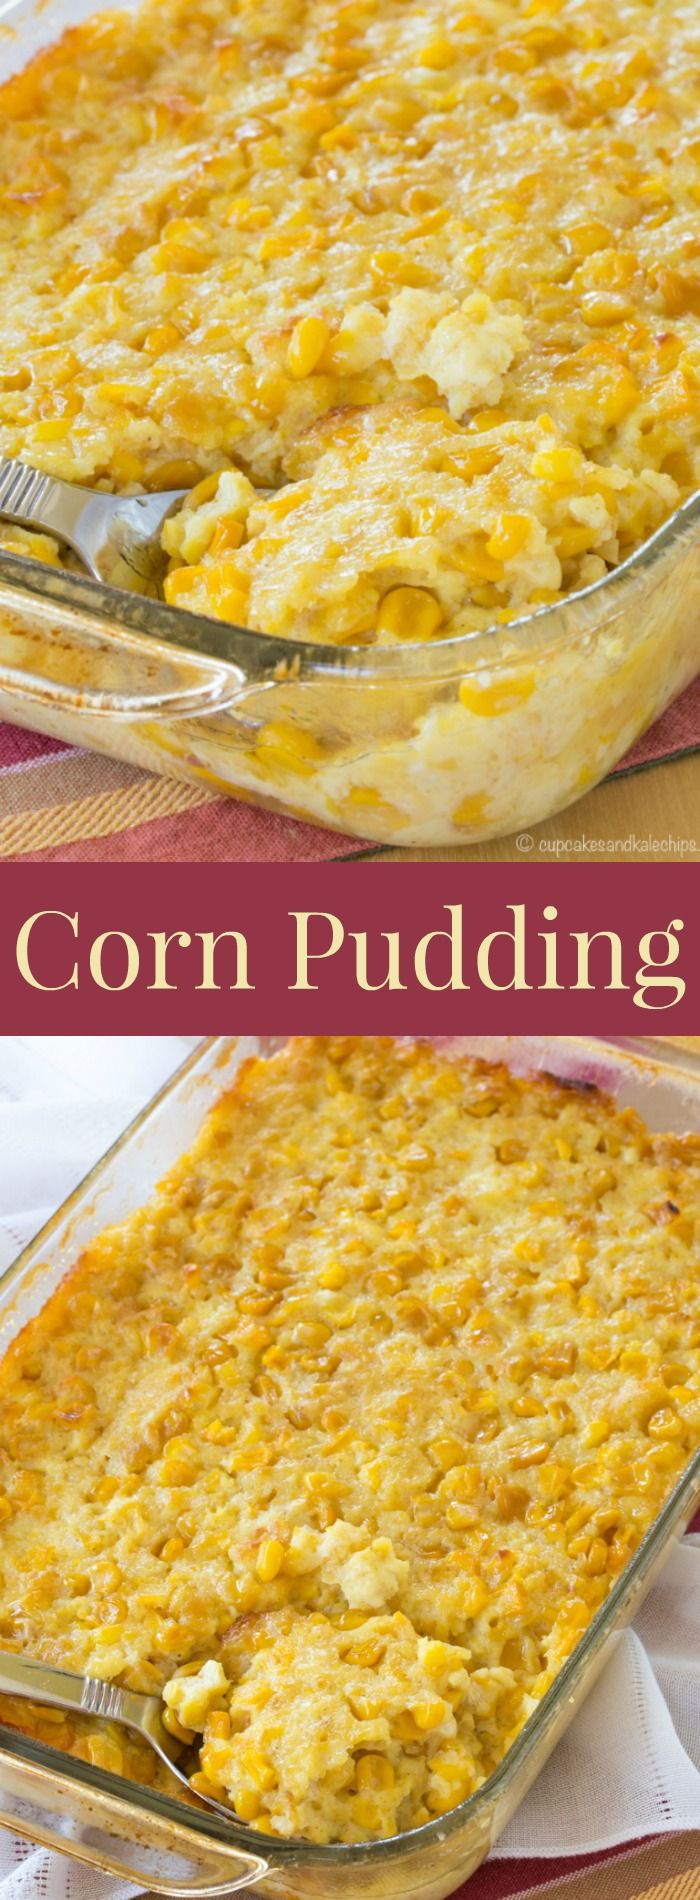 Corn Pudding - a family favorite side dish recipe for Thanksgiving and Christmas #thanksgivingrecipes